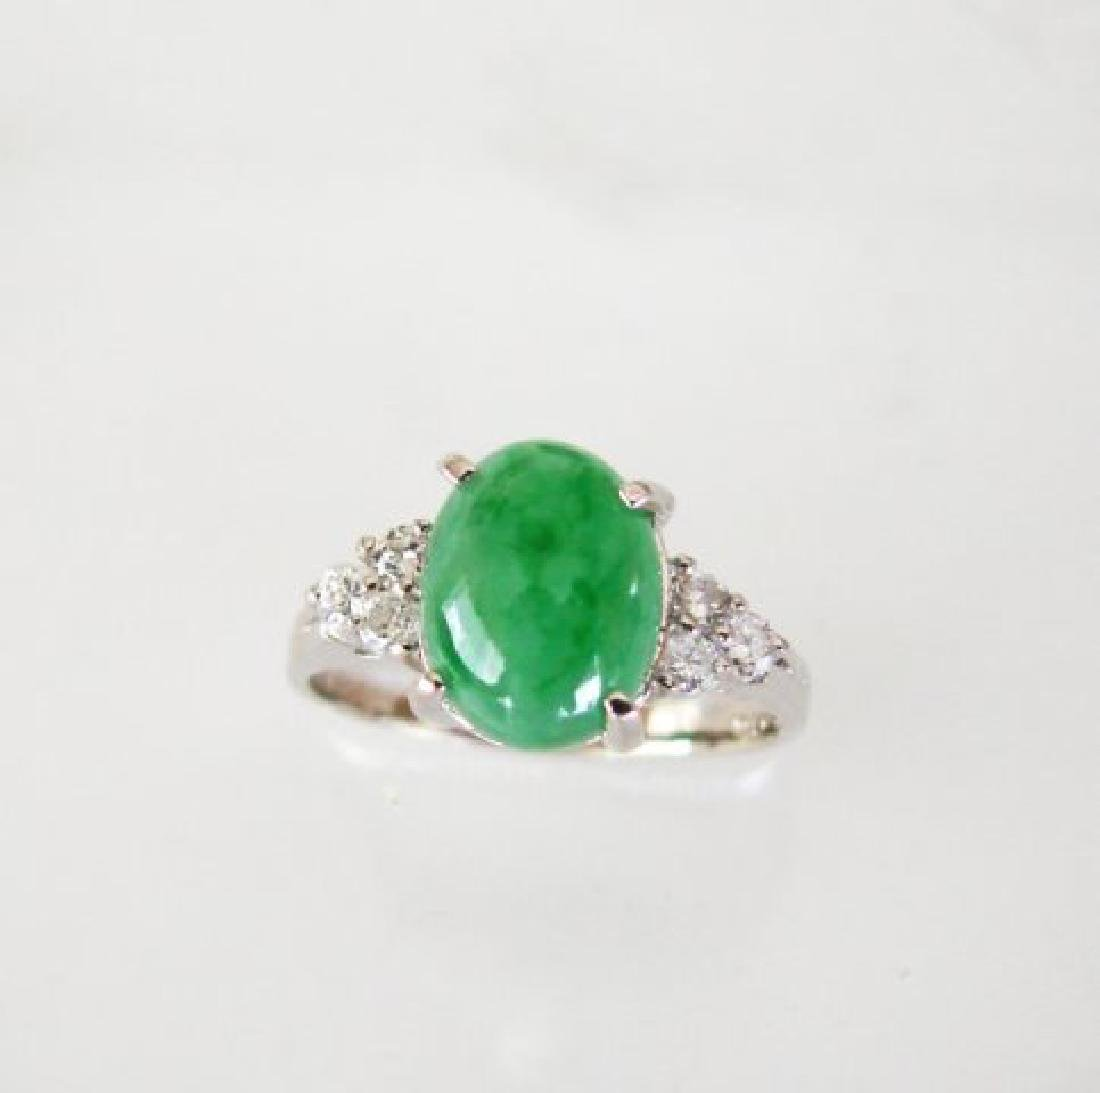 Diamond-Imperial Jadeite Jade Ring 3.39Ct14k W/G-Sz 6.5 - 2